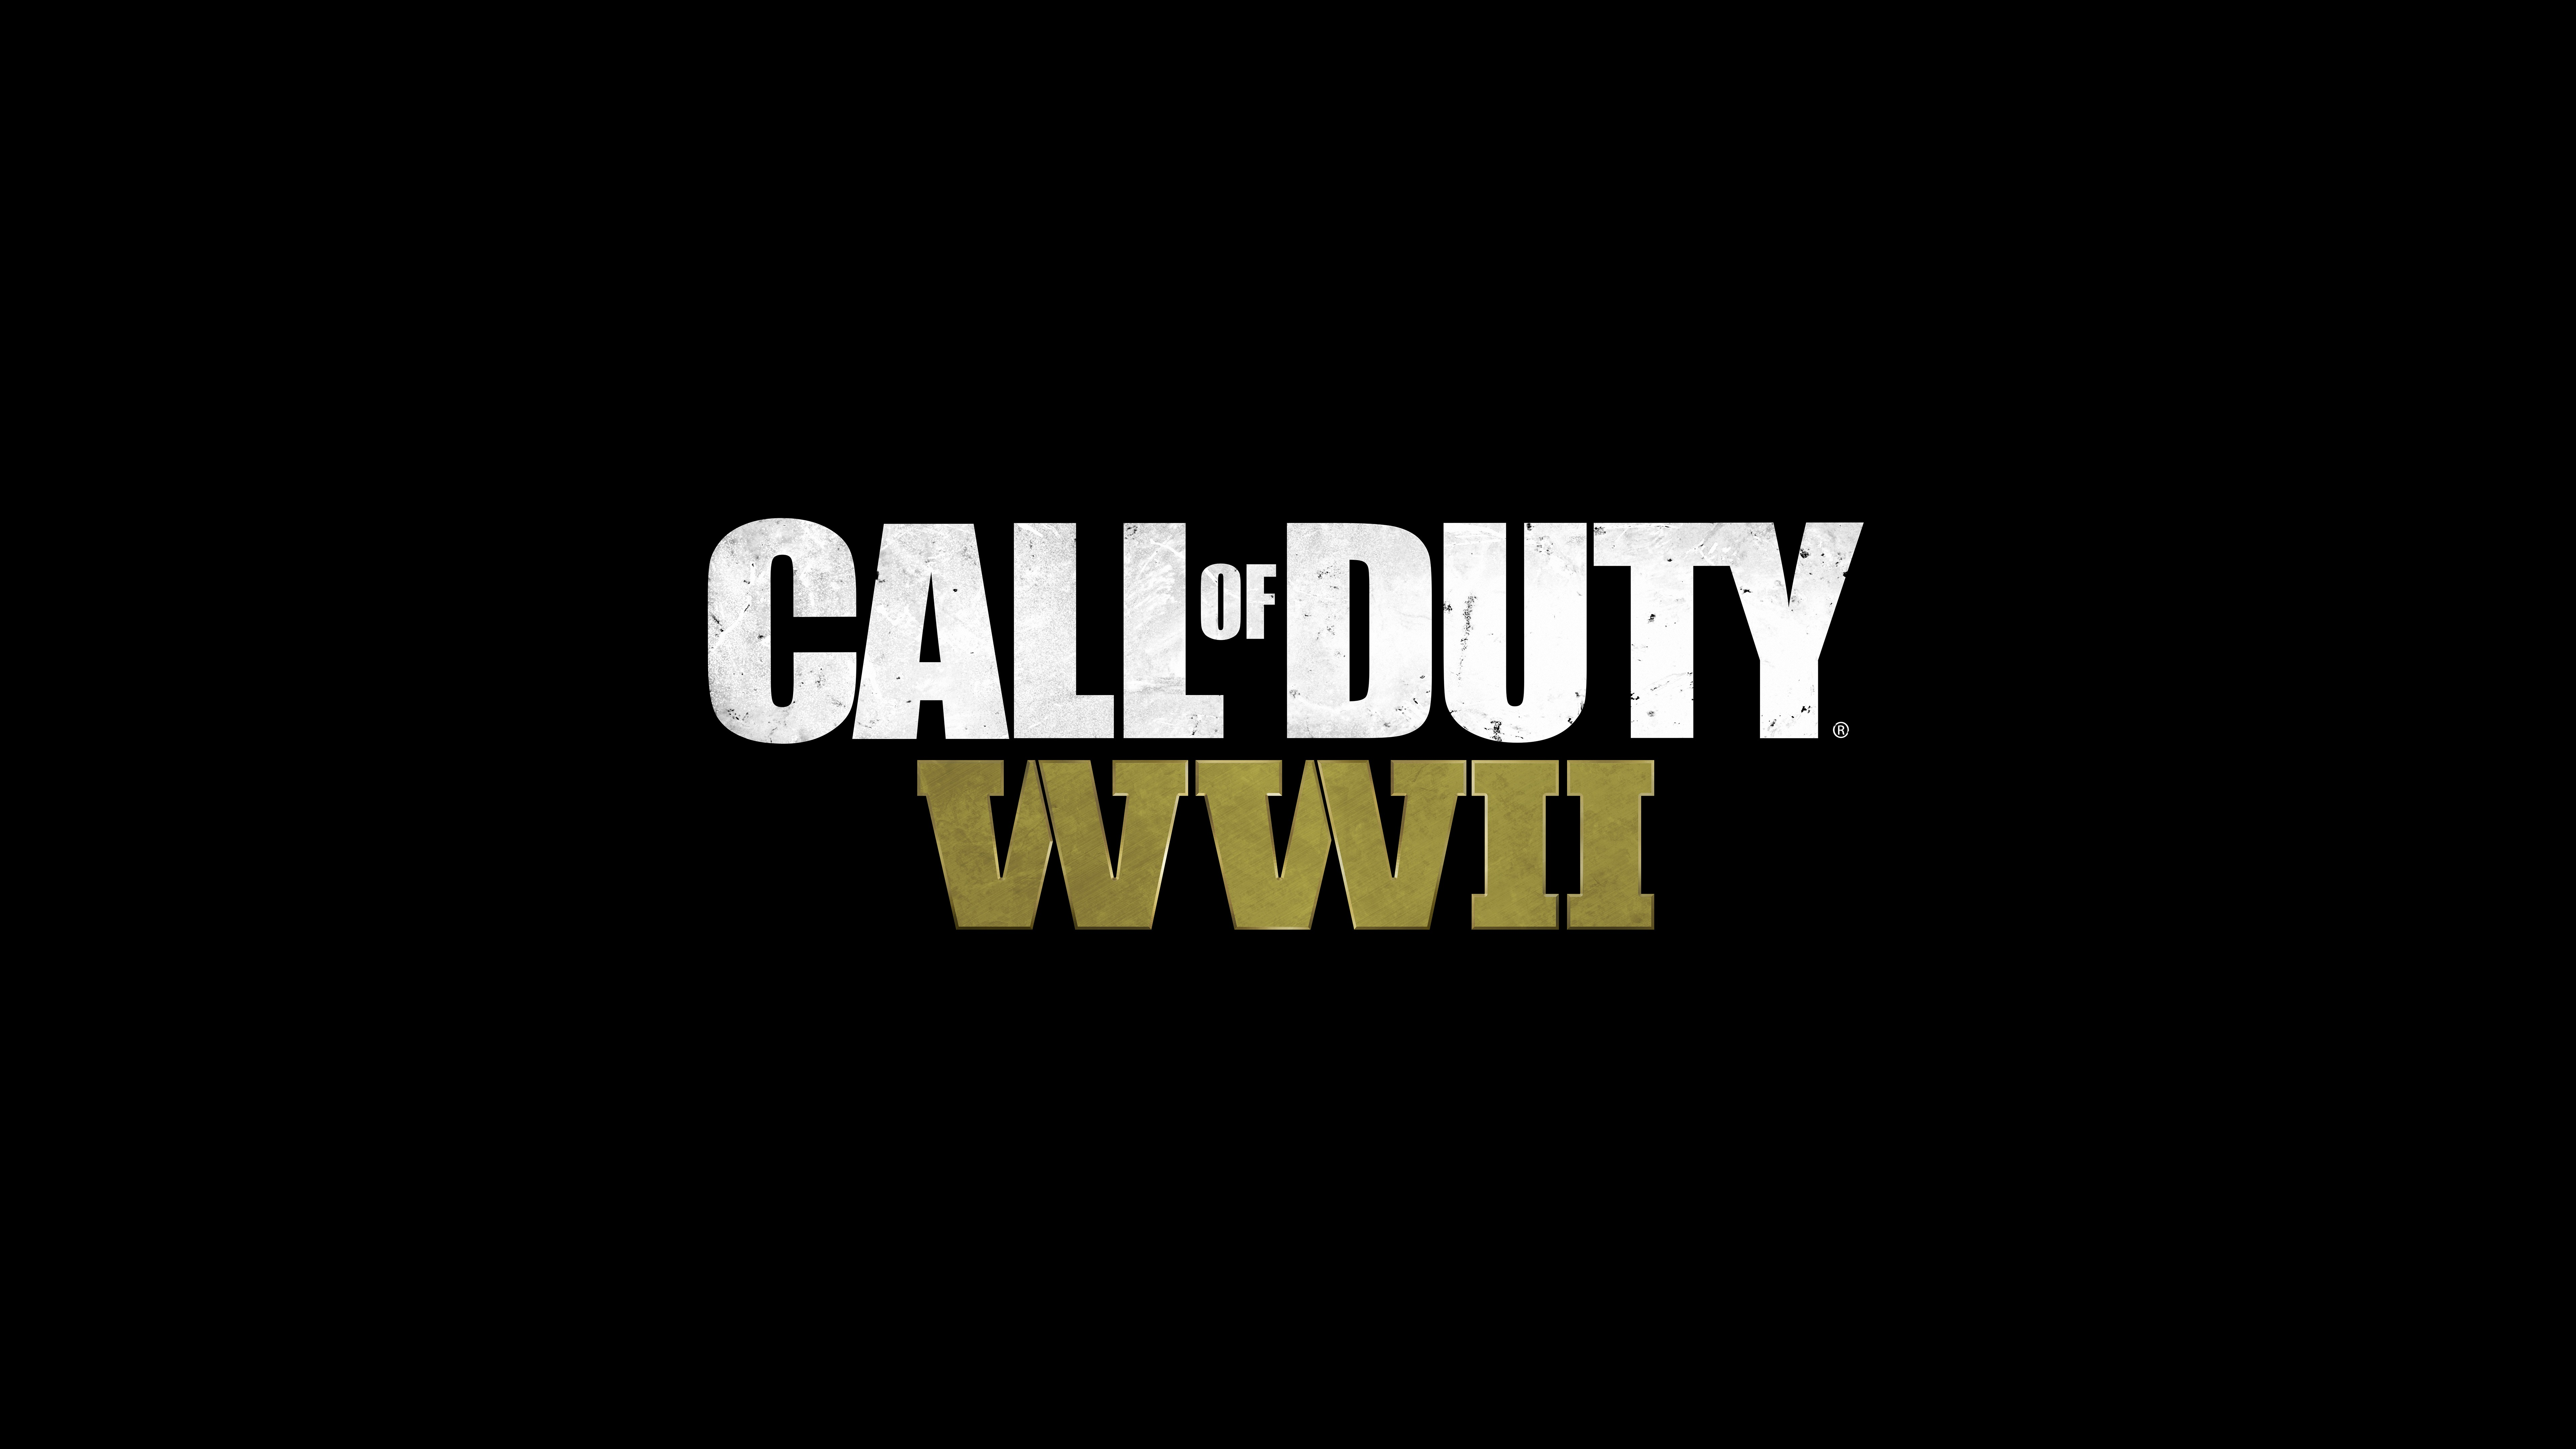 Call Of Duty Wwii Wallpaper: Call Of Duty WW2 Logo 8k, HD Games, 4k Wallpapers, Images